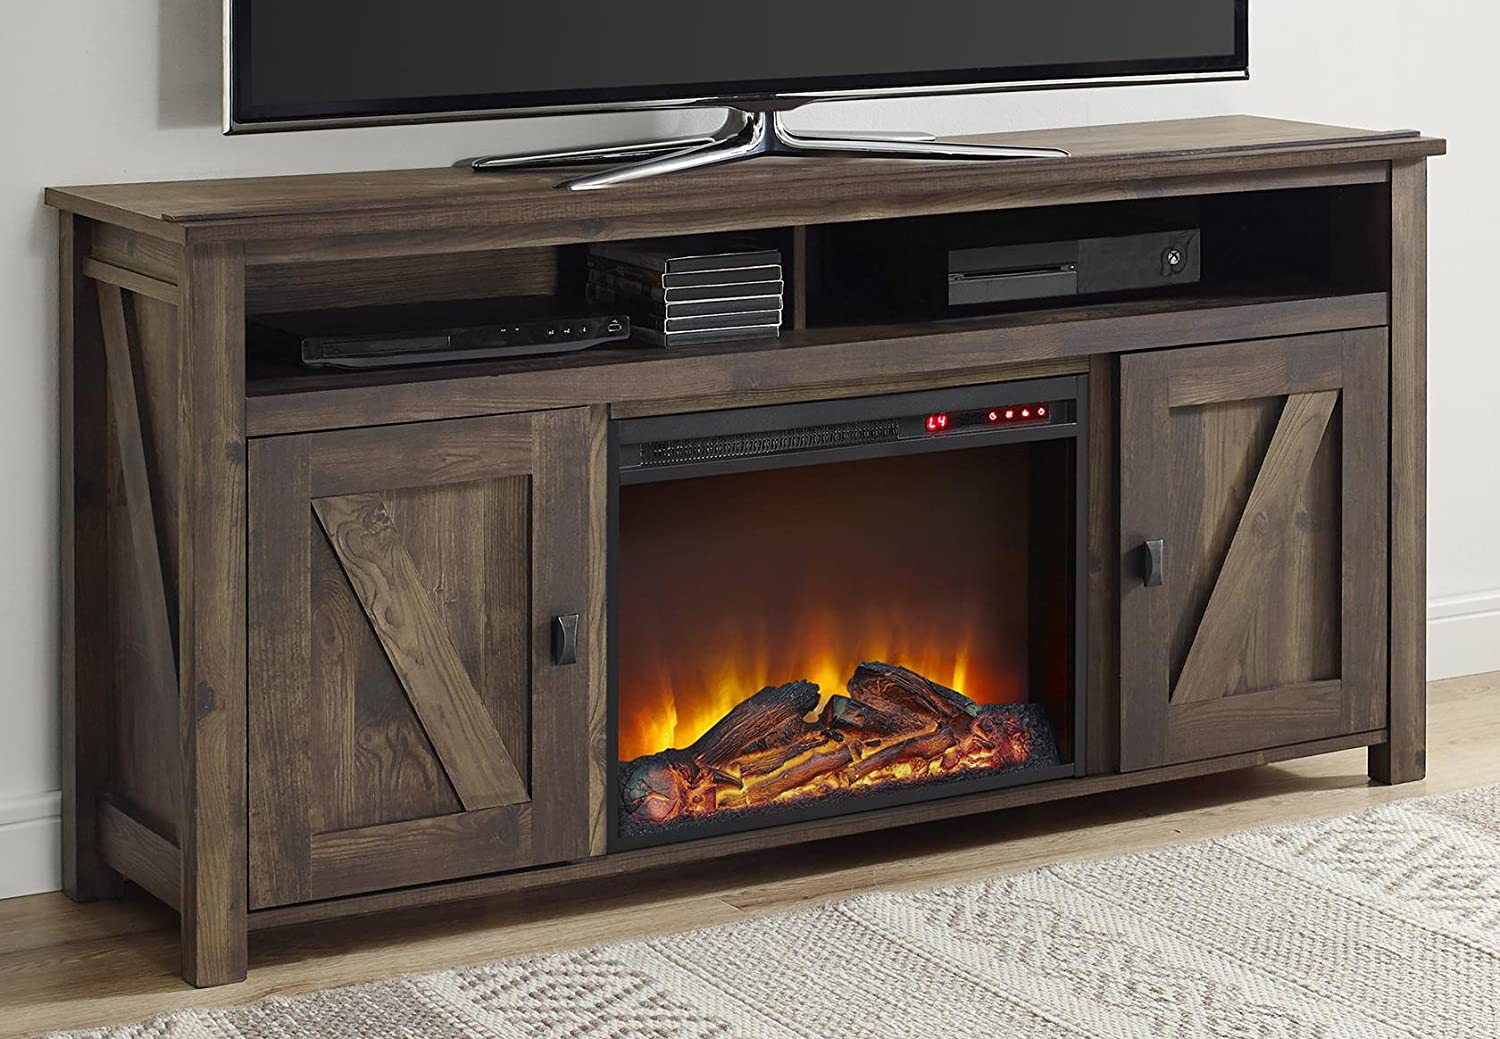 Ameriwood Home Farmington Electric Fireplace TV Console for TVs up to 20